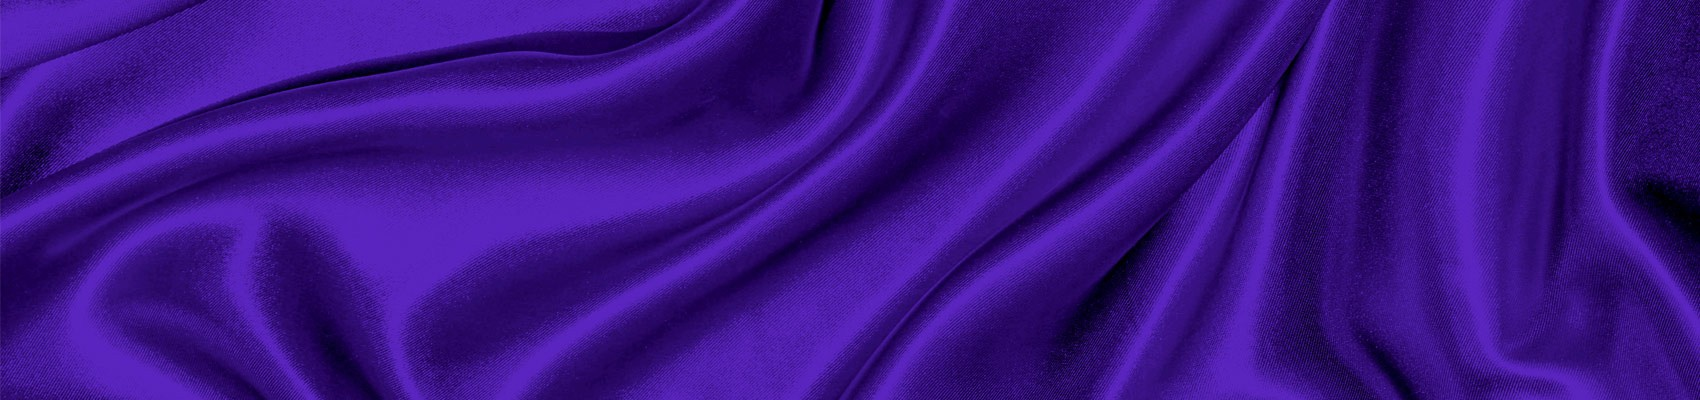 BBE-Satin-purple-bg-1700x400